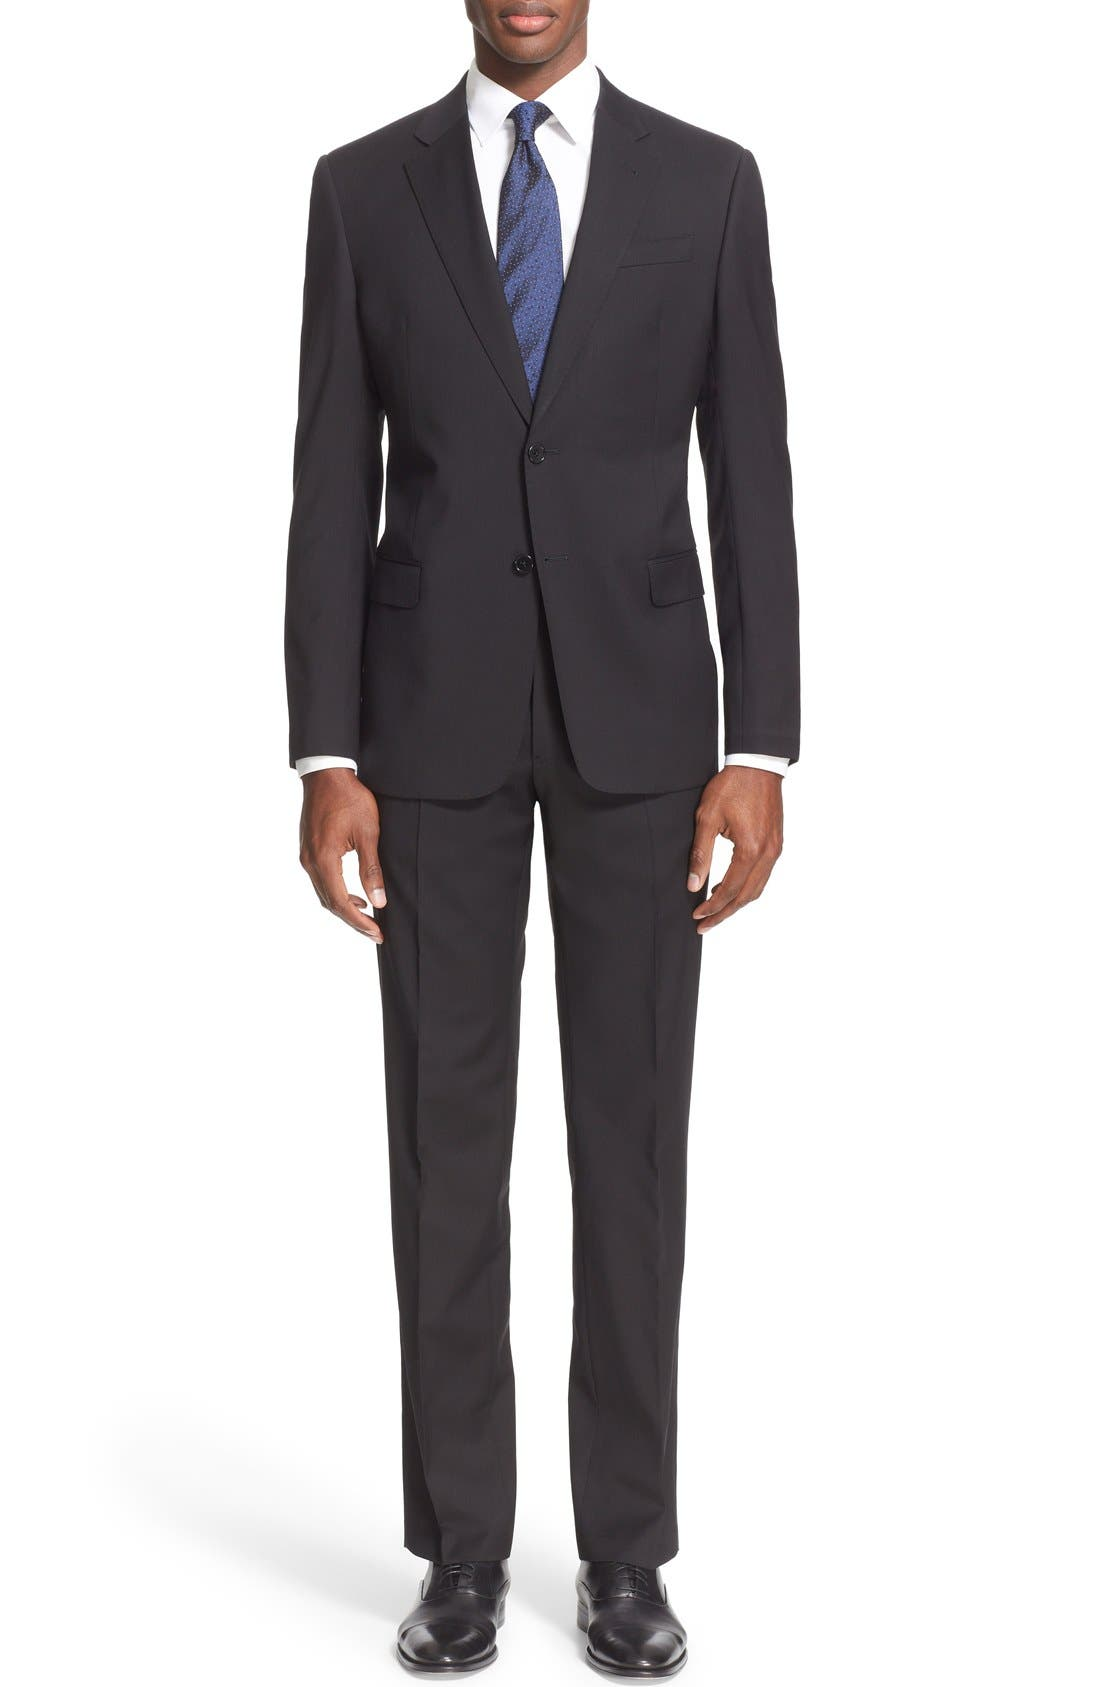 Main Image - Armani Collezioni G-Line Trim Fit Solid Wool Suit